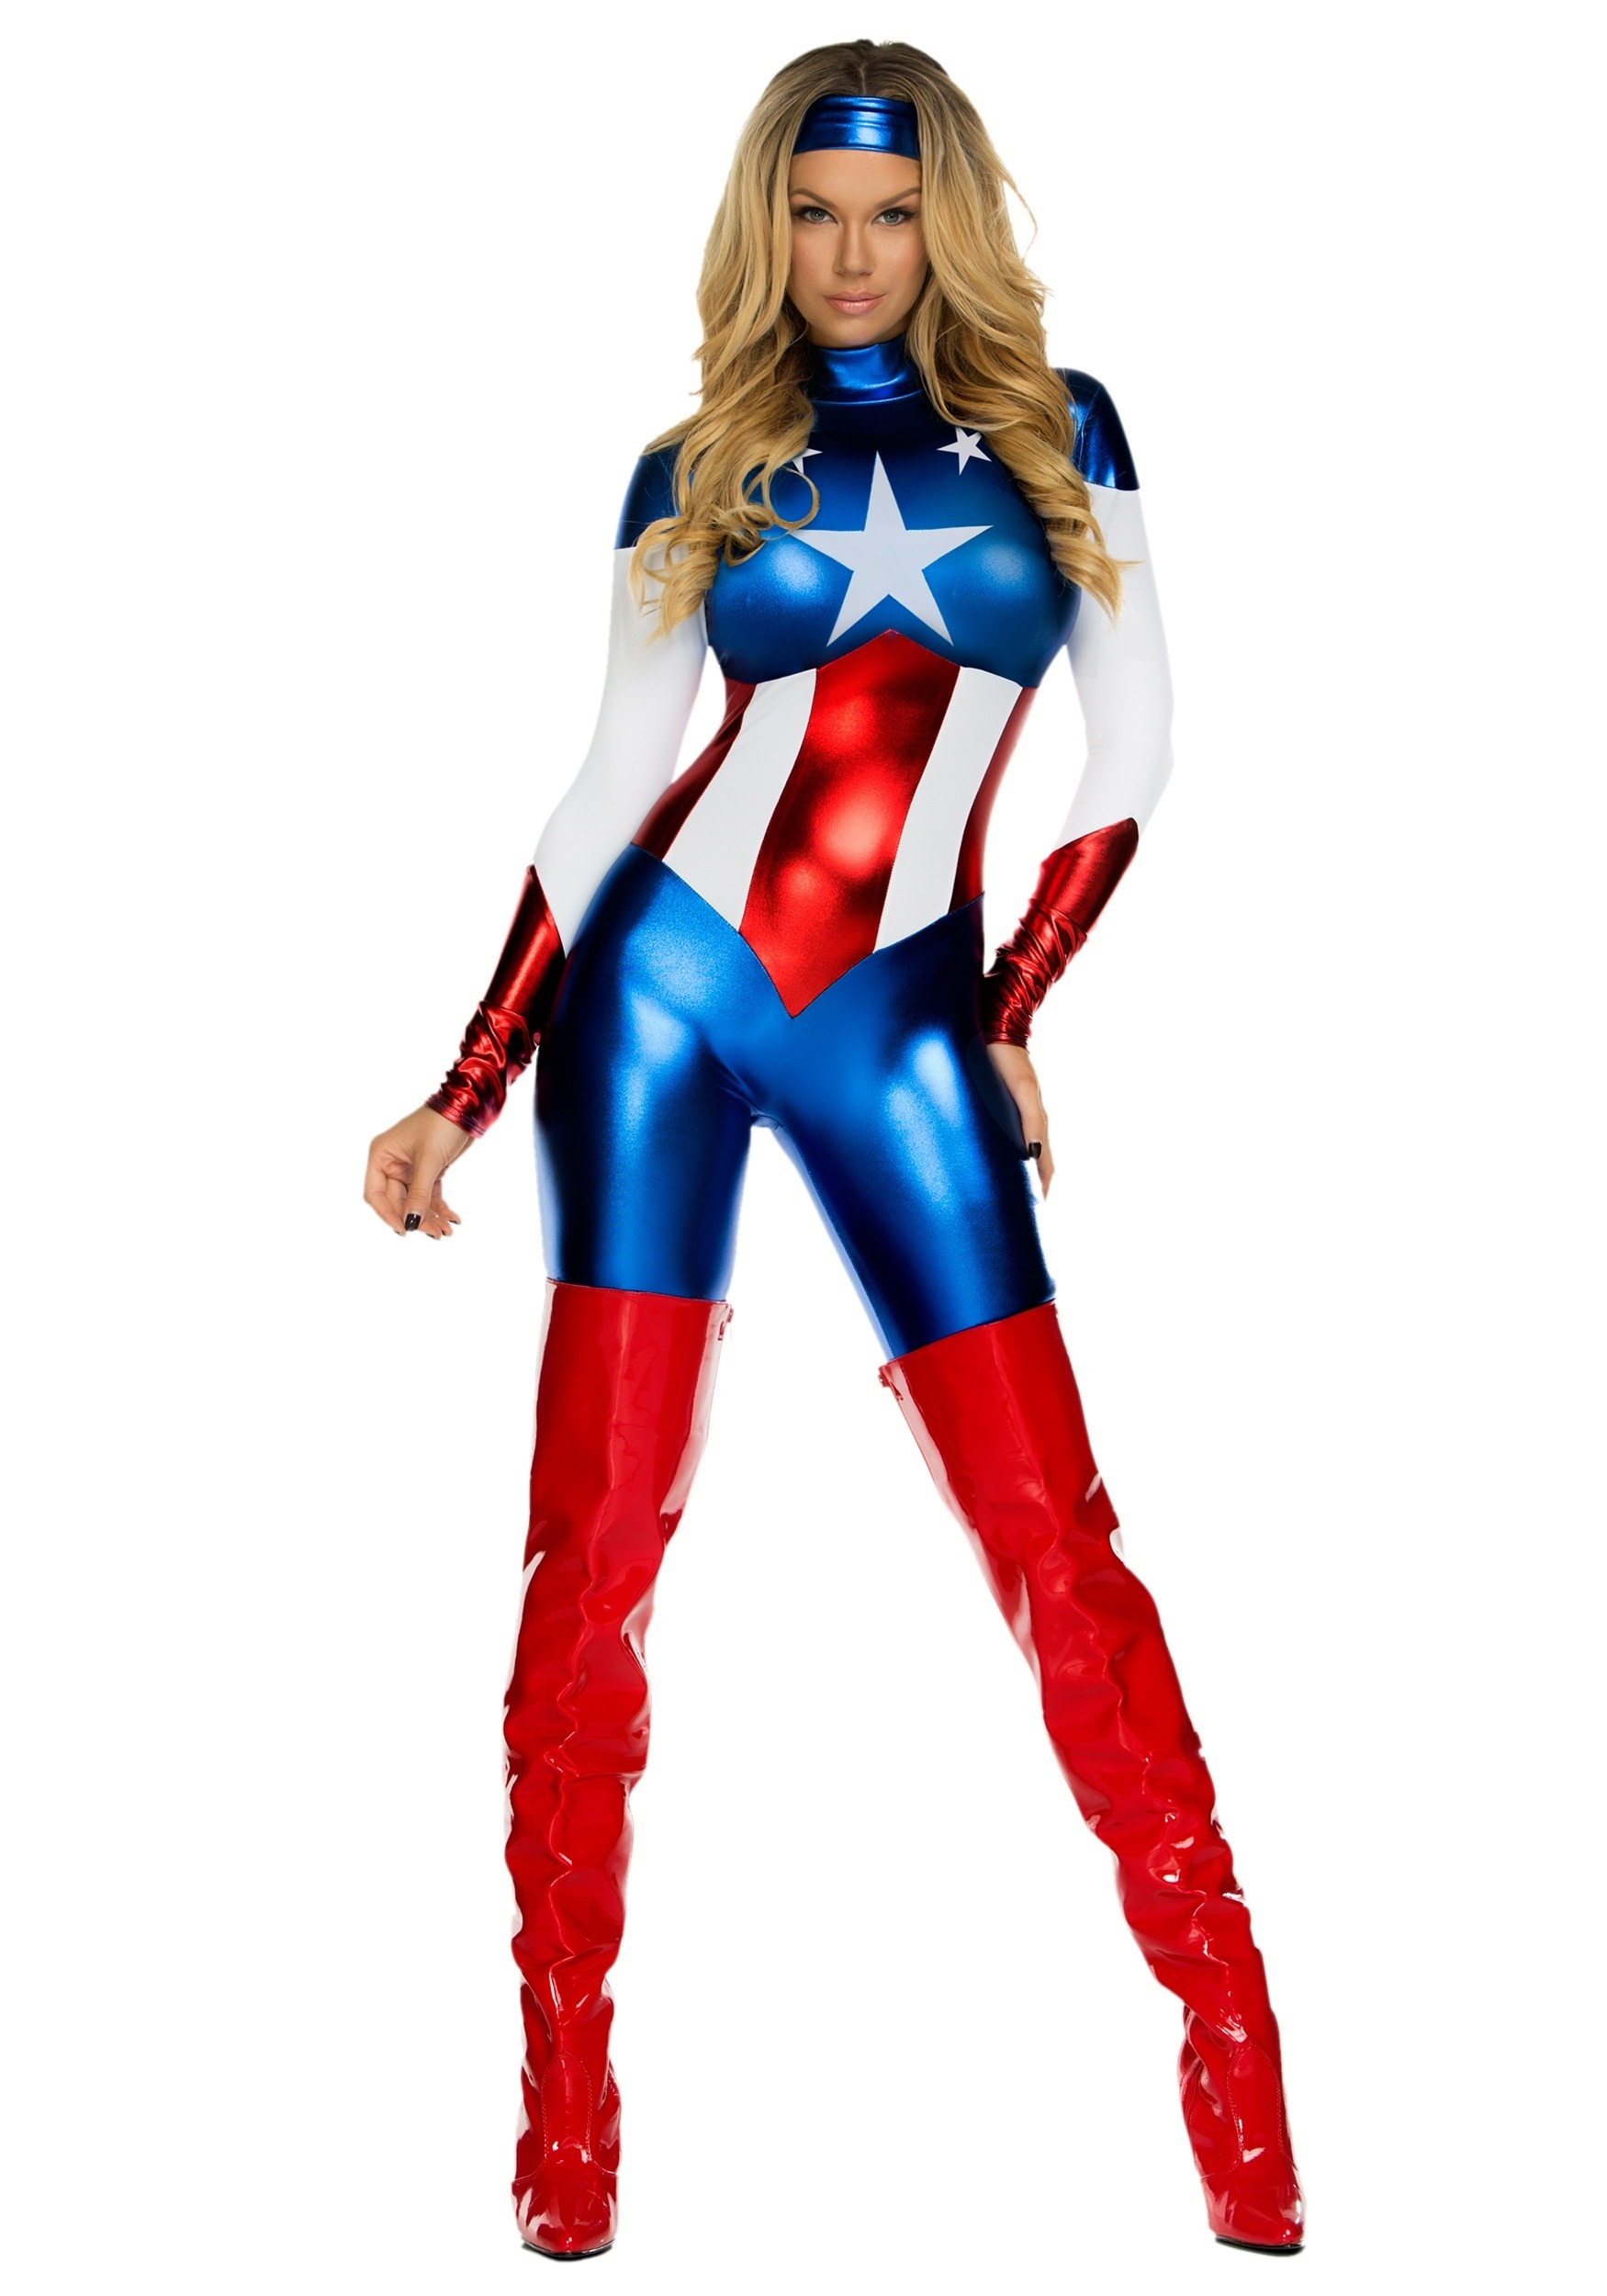 Womenu0027s American Beauty Superhero Costume1  sc 1 st  Halloween Costumes & Womenu0027s American Beauty Superhero Costume